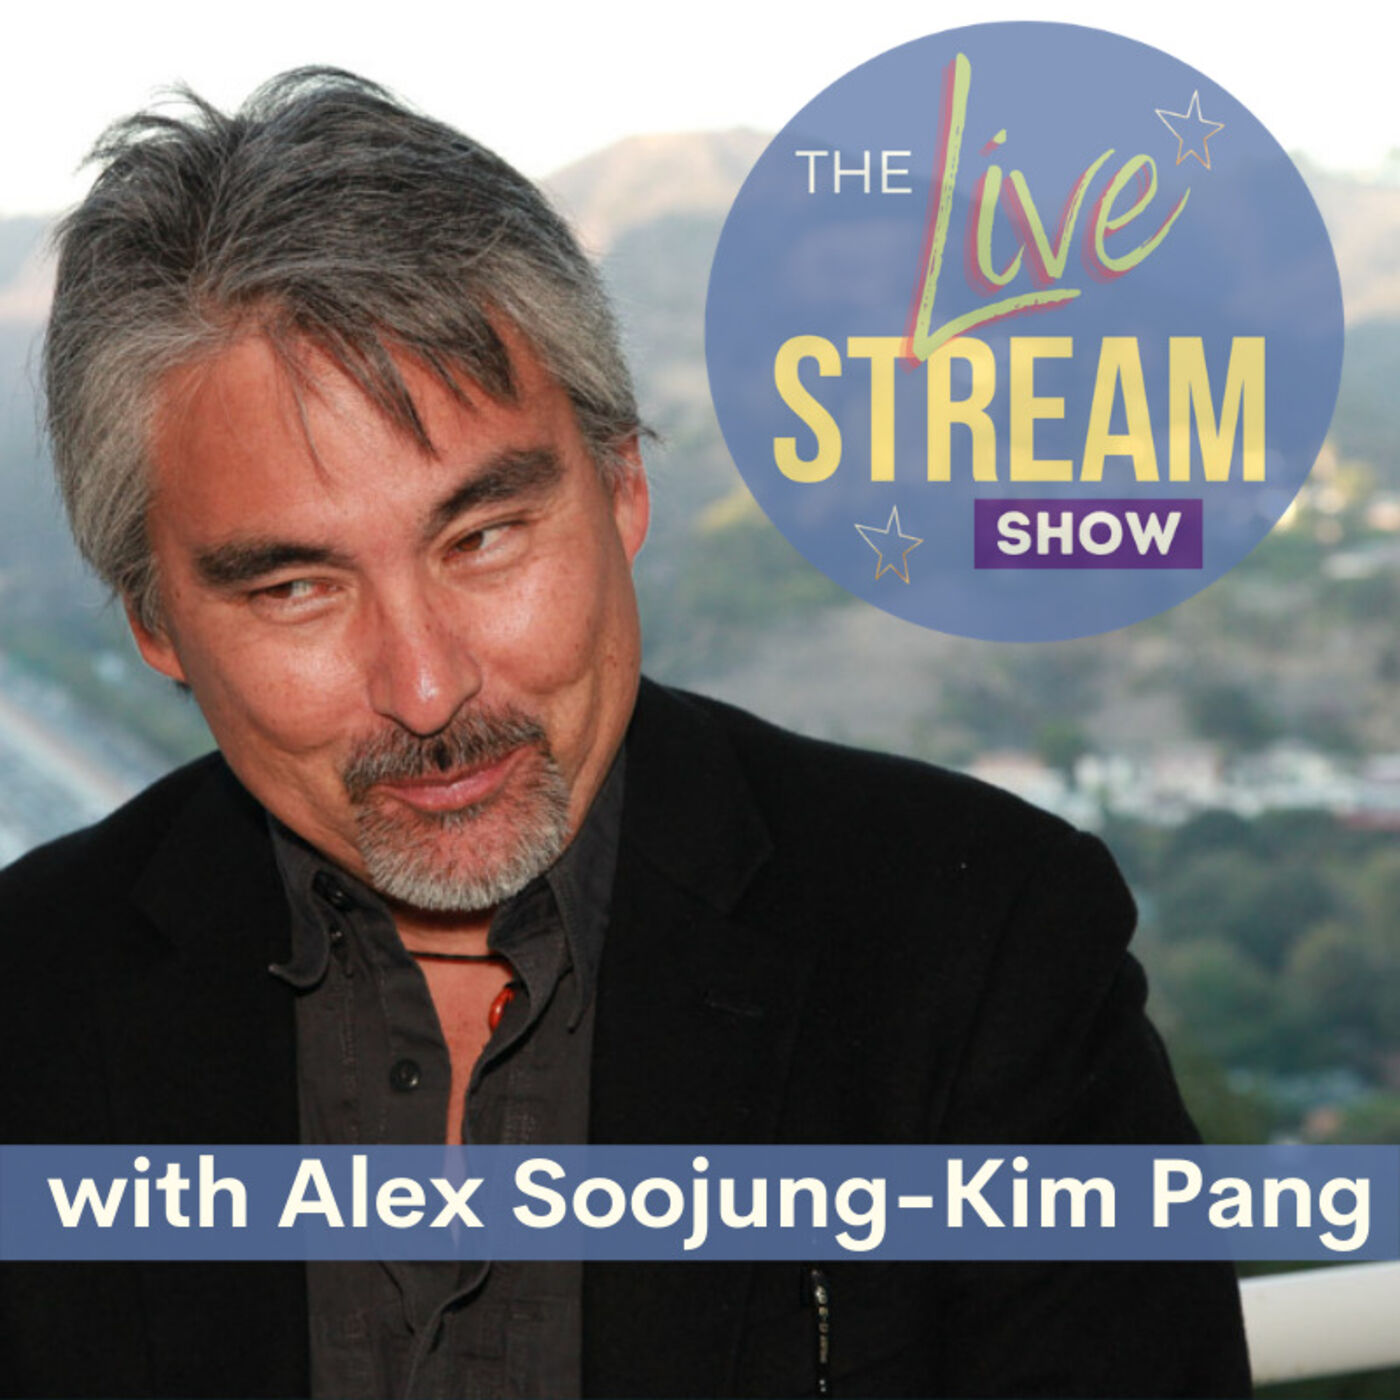 Work less, do more & look smart with Alex Soojung-Kim Pang